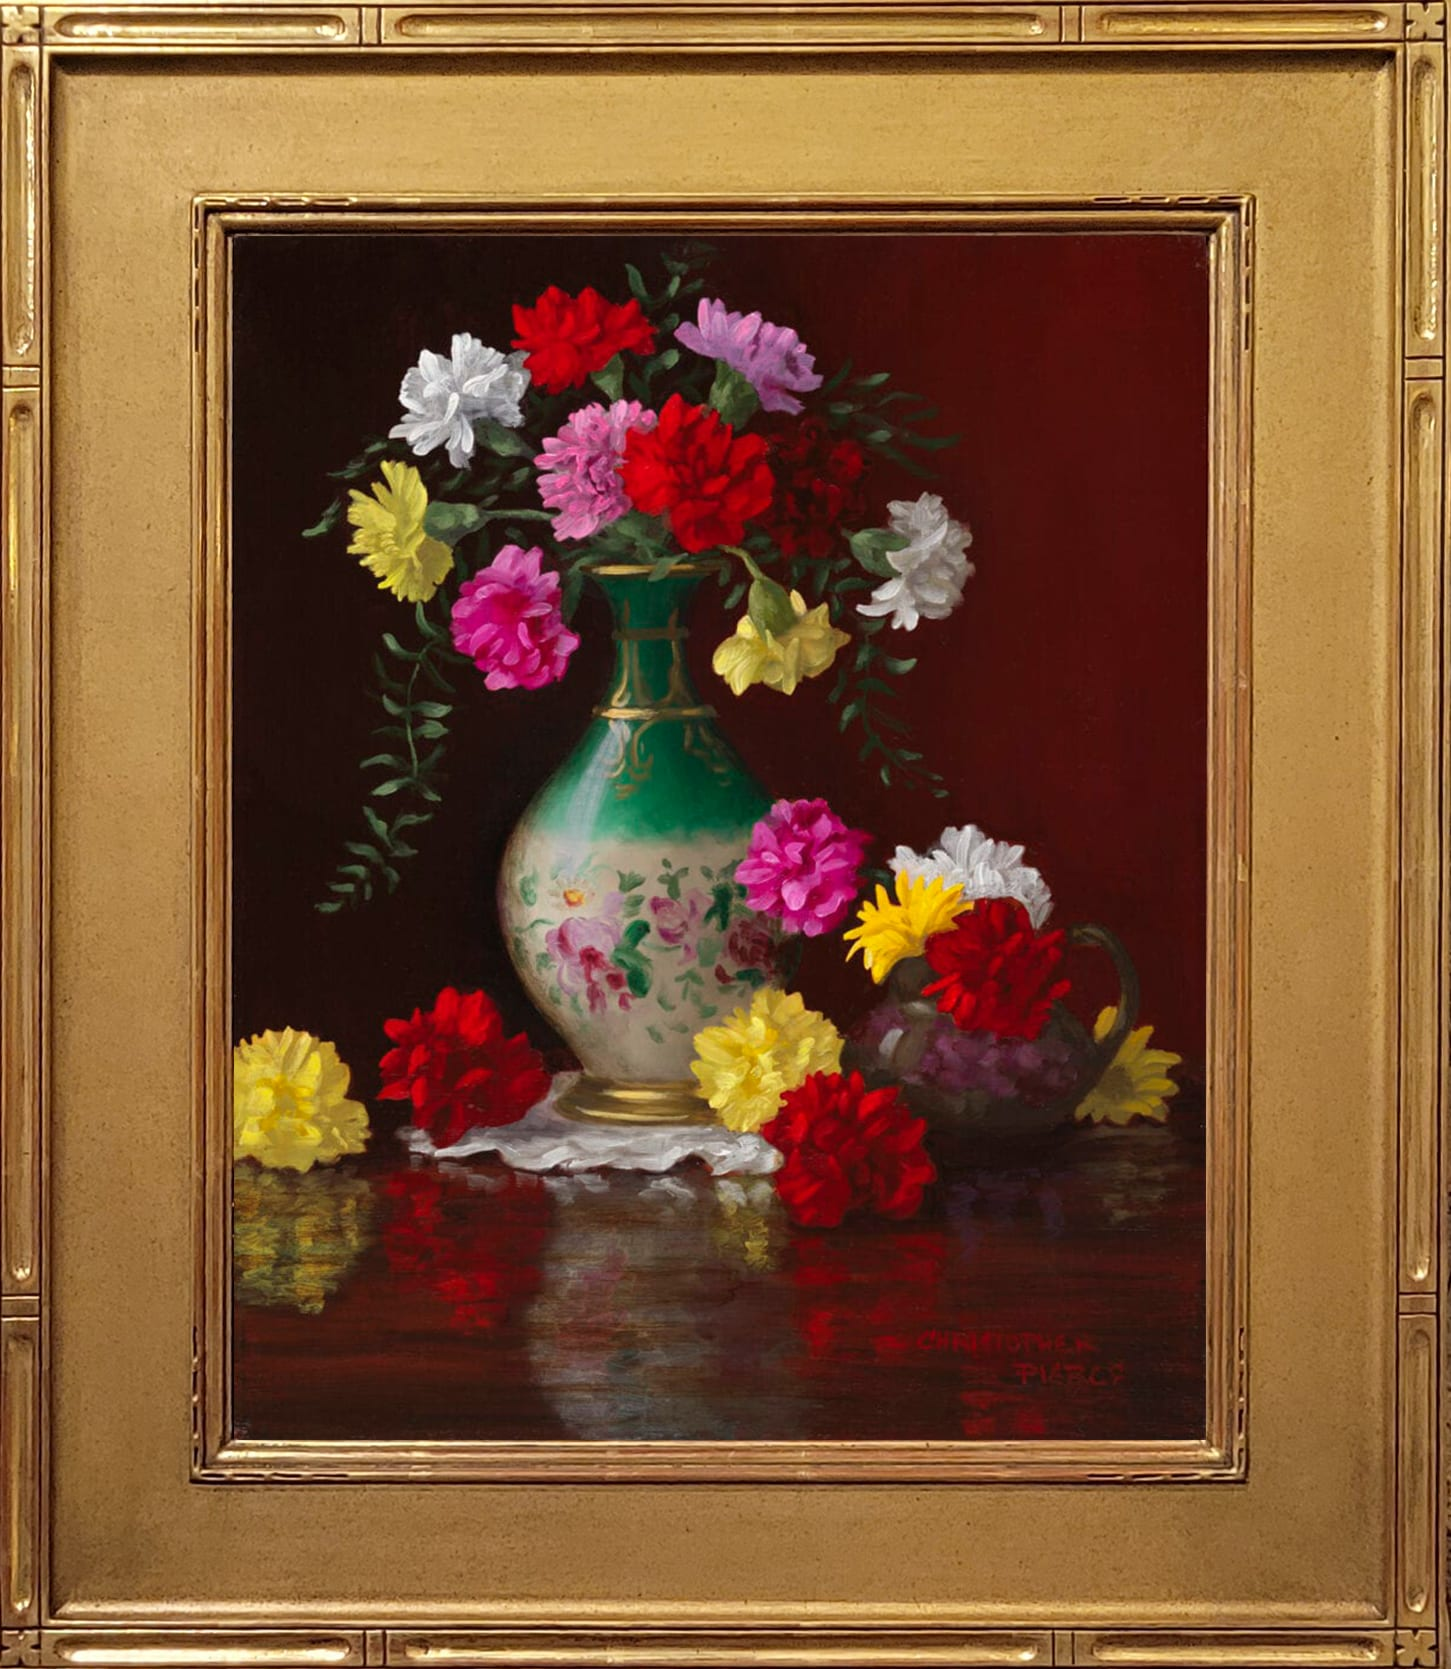 Pierce_Victorian_Vase_with_Carnations_20x16_Frame